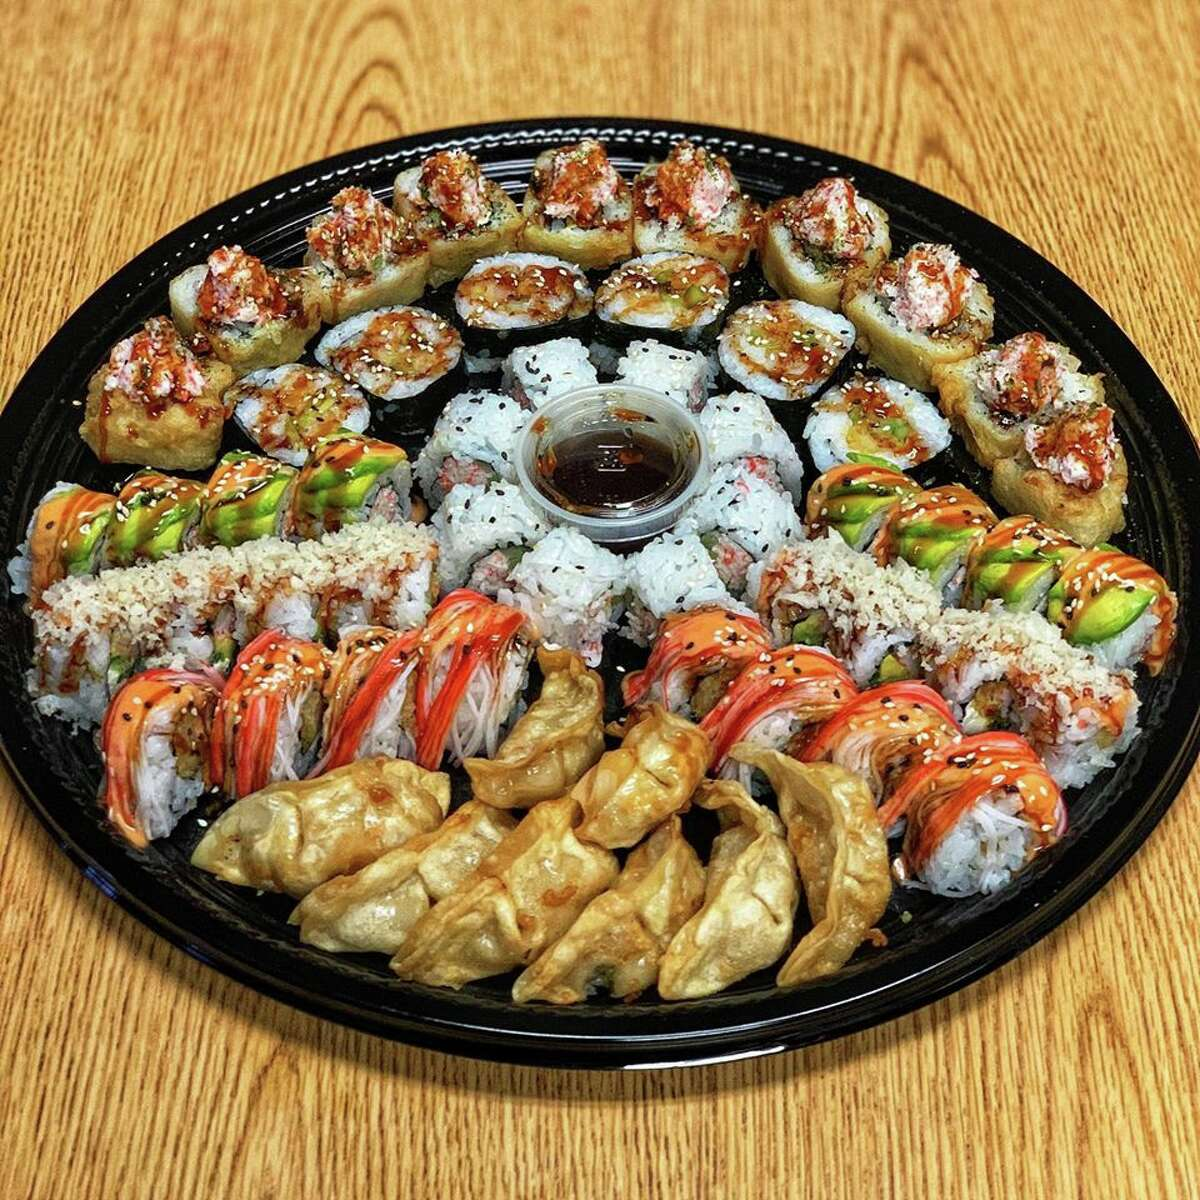 Nama Ramen, at 6565 Babcock Road, is selling sushi party trays. Though Texas restaurants were allowed to reopen for dine-in starting May 1, Nama decided to stick with the to-go model in the meantime. The restaurant has trays with a 20-piece Nama Roll and six-piece fried gyoza for $25 or a larger tray with six rolls and gyoza for $49.95. See the full detailshere.